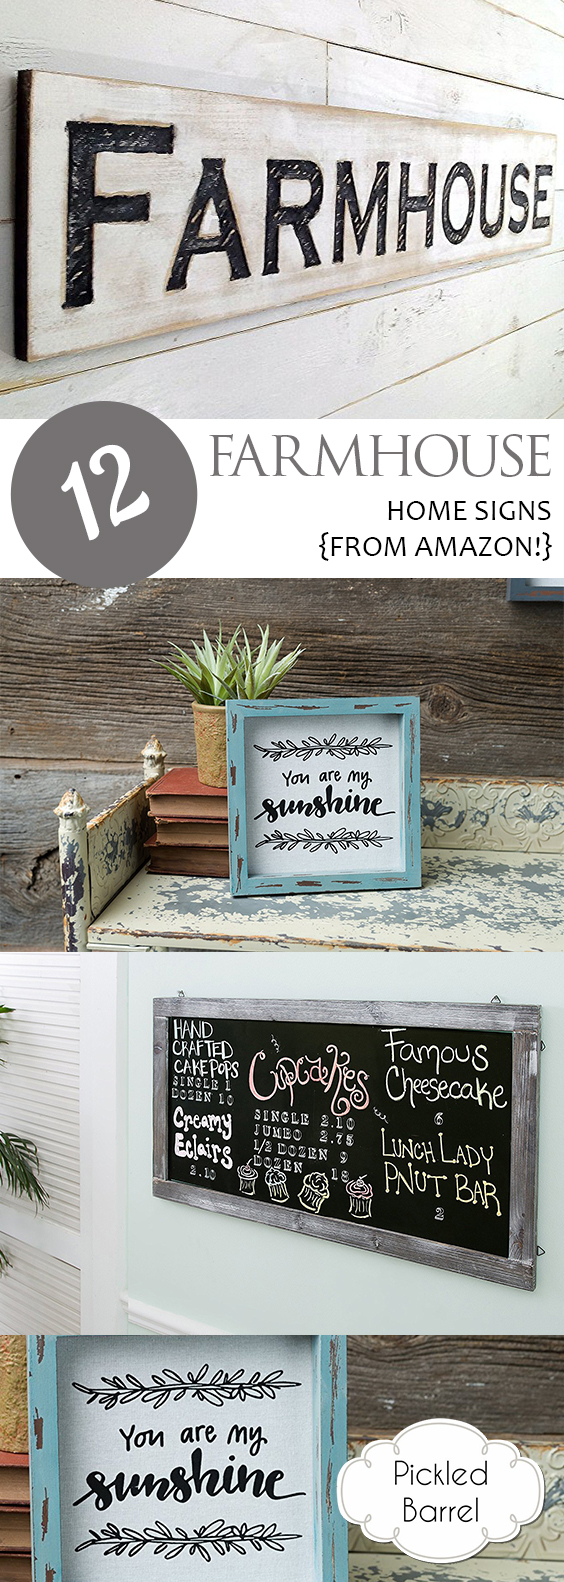 12 Farmhouse Home Signs {from Amazon!} | Farmhouse, Farmhouse Home Decor, Farmhouse DIY, DIY Farmhouse Decor, Farmhouse Home Decor, Farmhouse Signs, Wall Hangings, DIY Wall Hangings #FarmhouseHome #DIYFarmhouseDecor #FarmhouseDIY #RusticHome